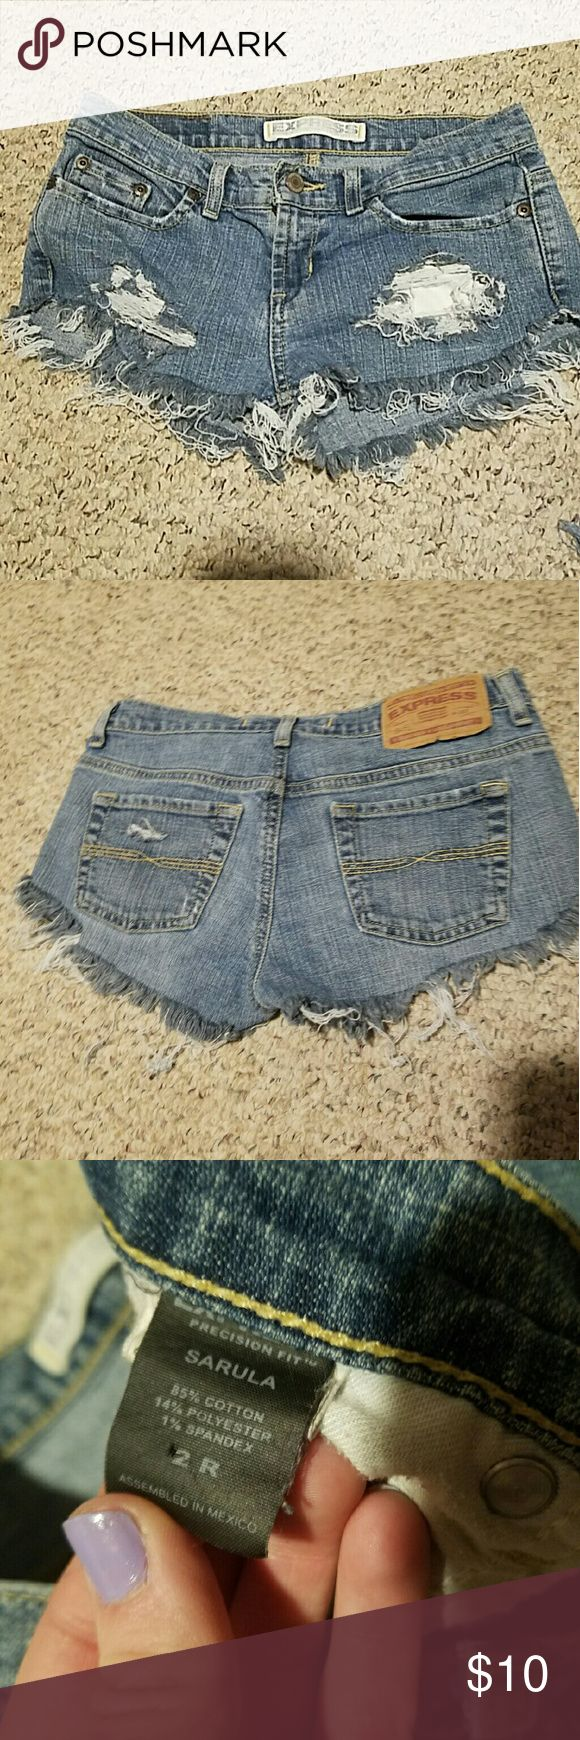 Express cut-off Jean shorts Size 2 Express vintage style cut-off Jean shorts, work a few times, we're too small, but very cute for summer. Express Shorts Jean Shorts